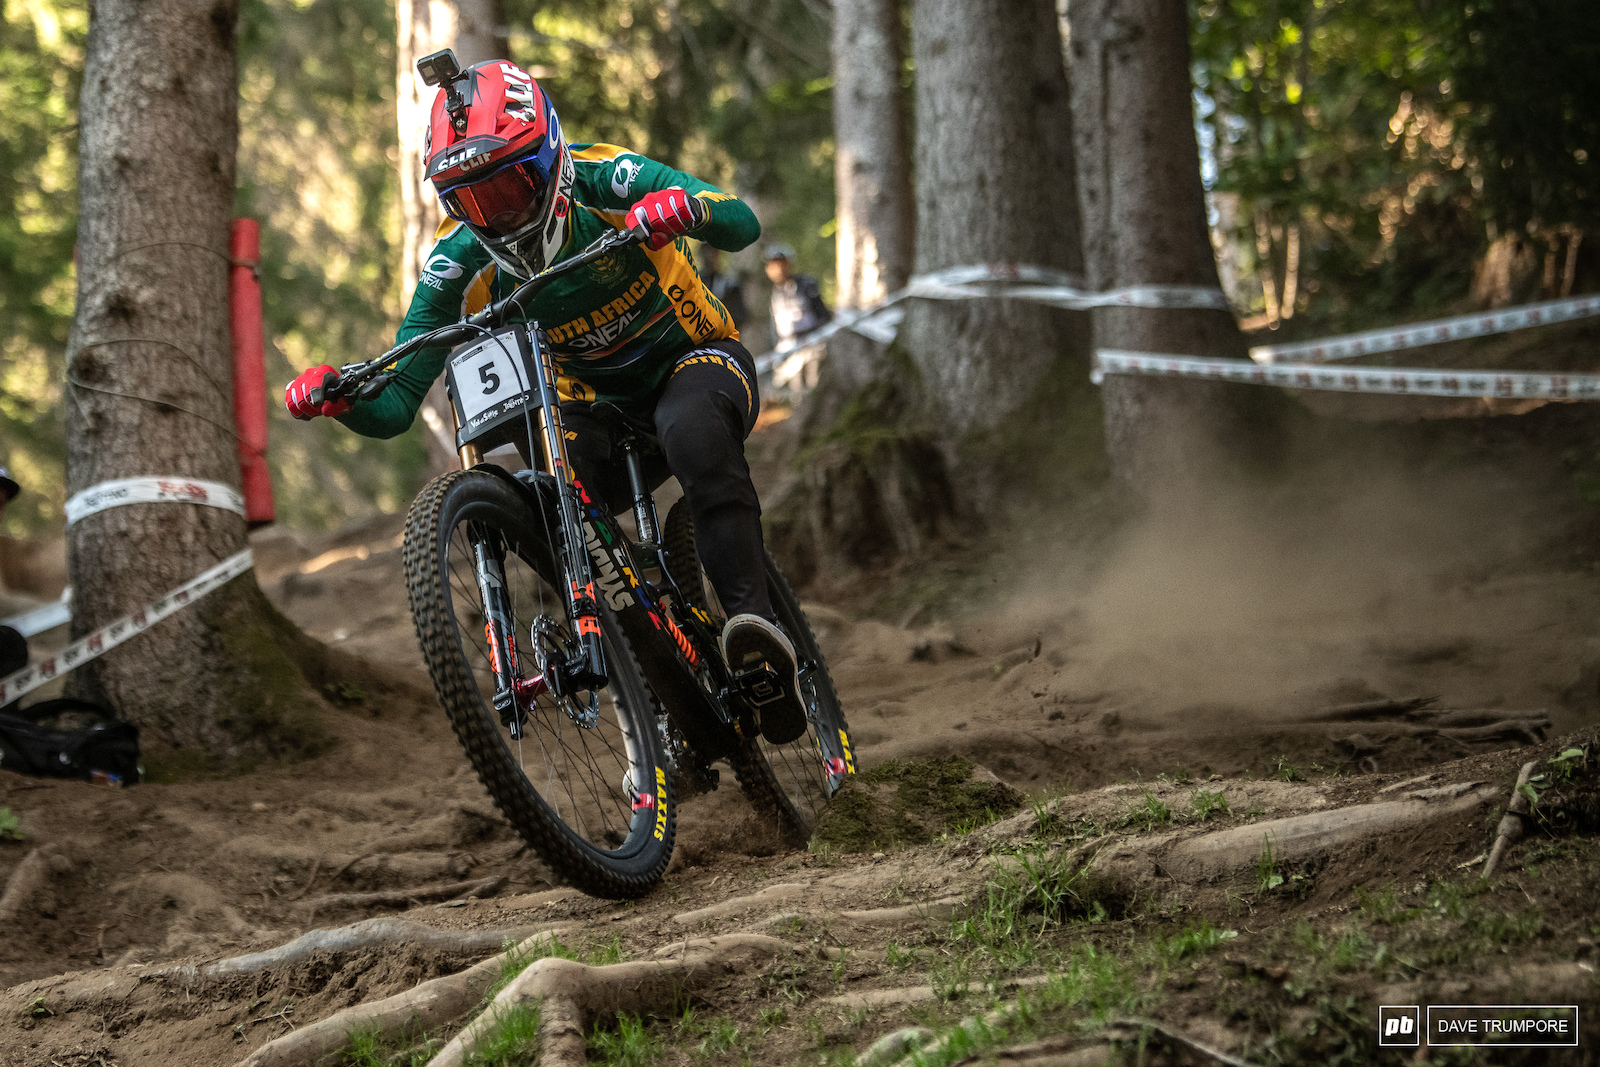 Greg Minnaar is a man on a mission here. 40 years old and just 1.5 seconds back in 4th